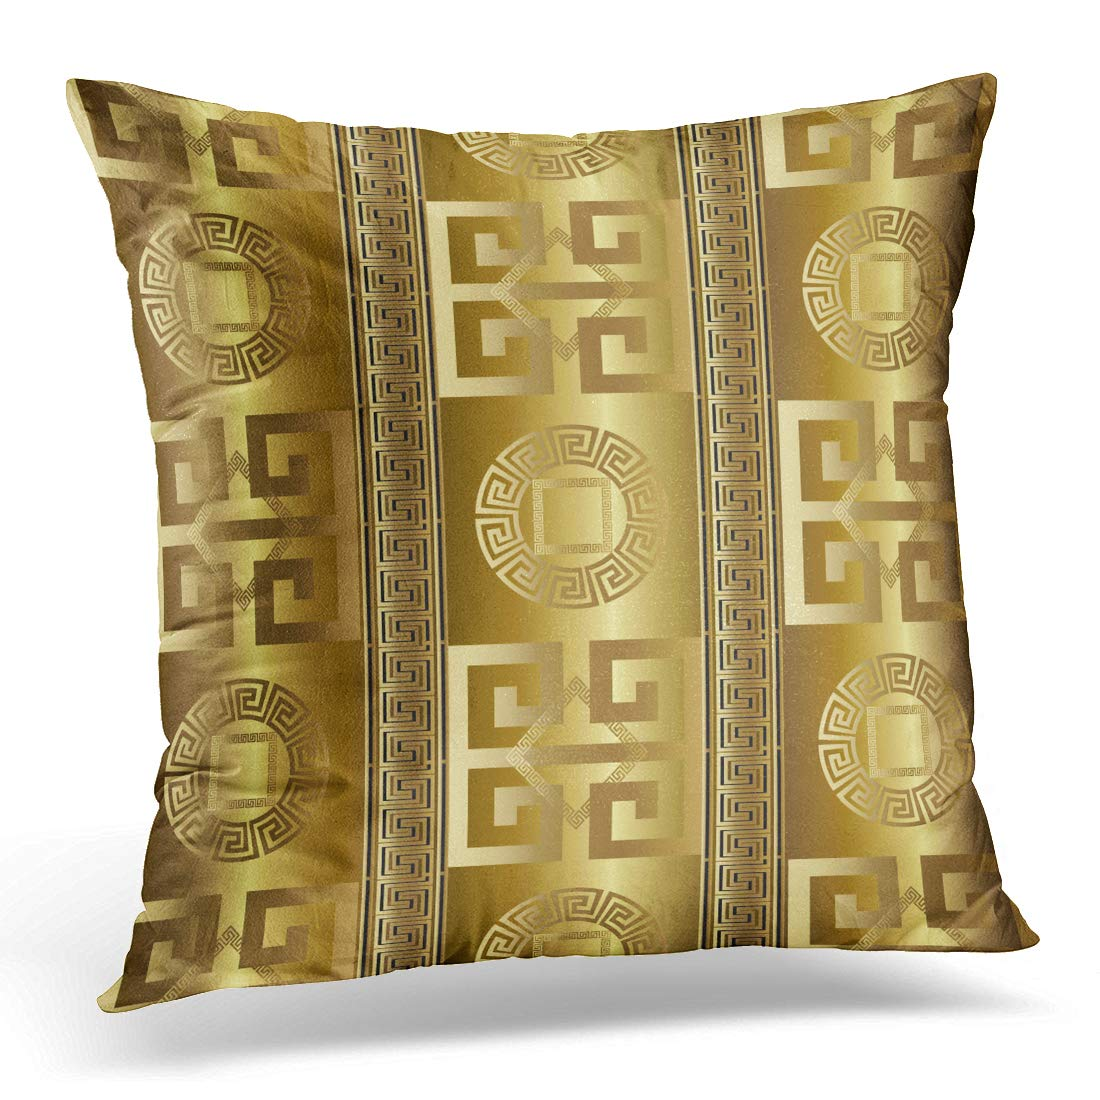 Throw Pillow Covers Case  Modern Abstract Geometric Gold 3D Vintage Greek Key Squares Circles Pillowcase Cushion